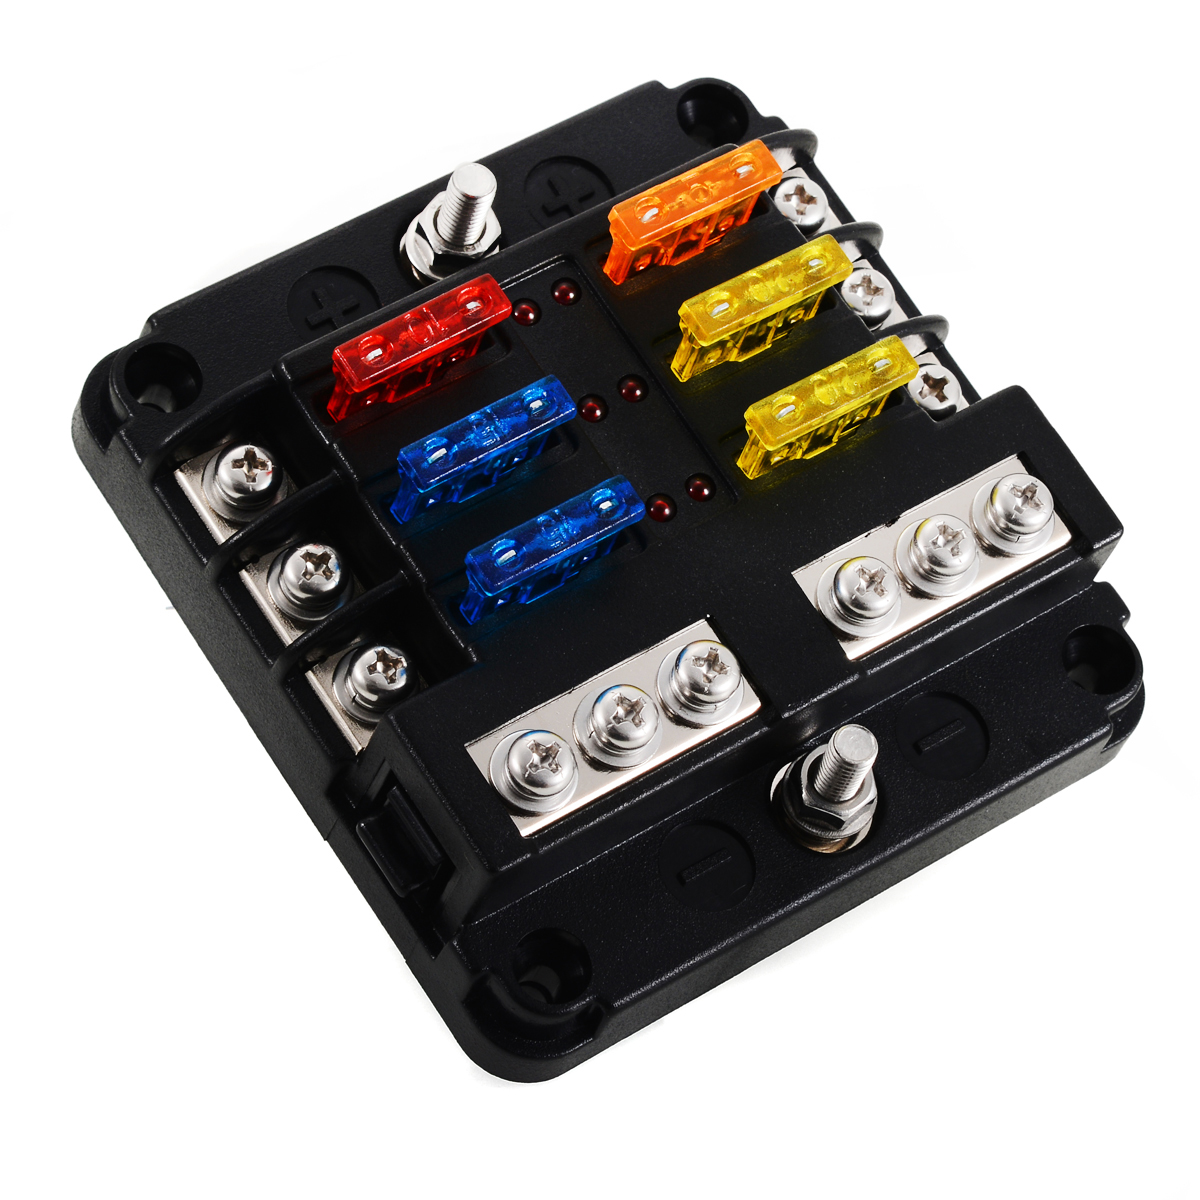 hight resolution of 6 way blade fuse holder box block case 12v 24v car truck marine bus rv van mayitr for car boat marine caravan truck